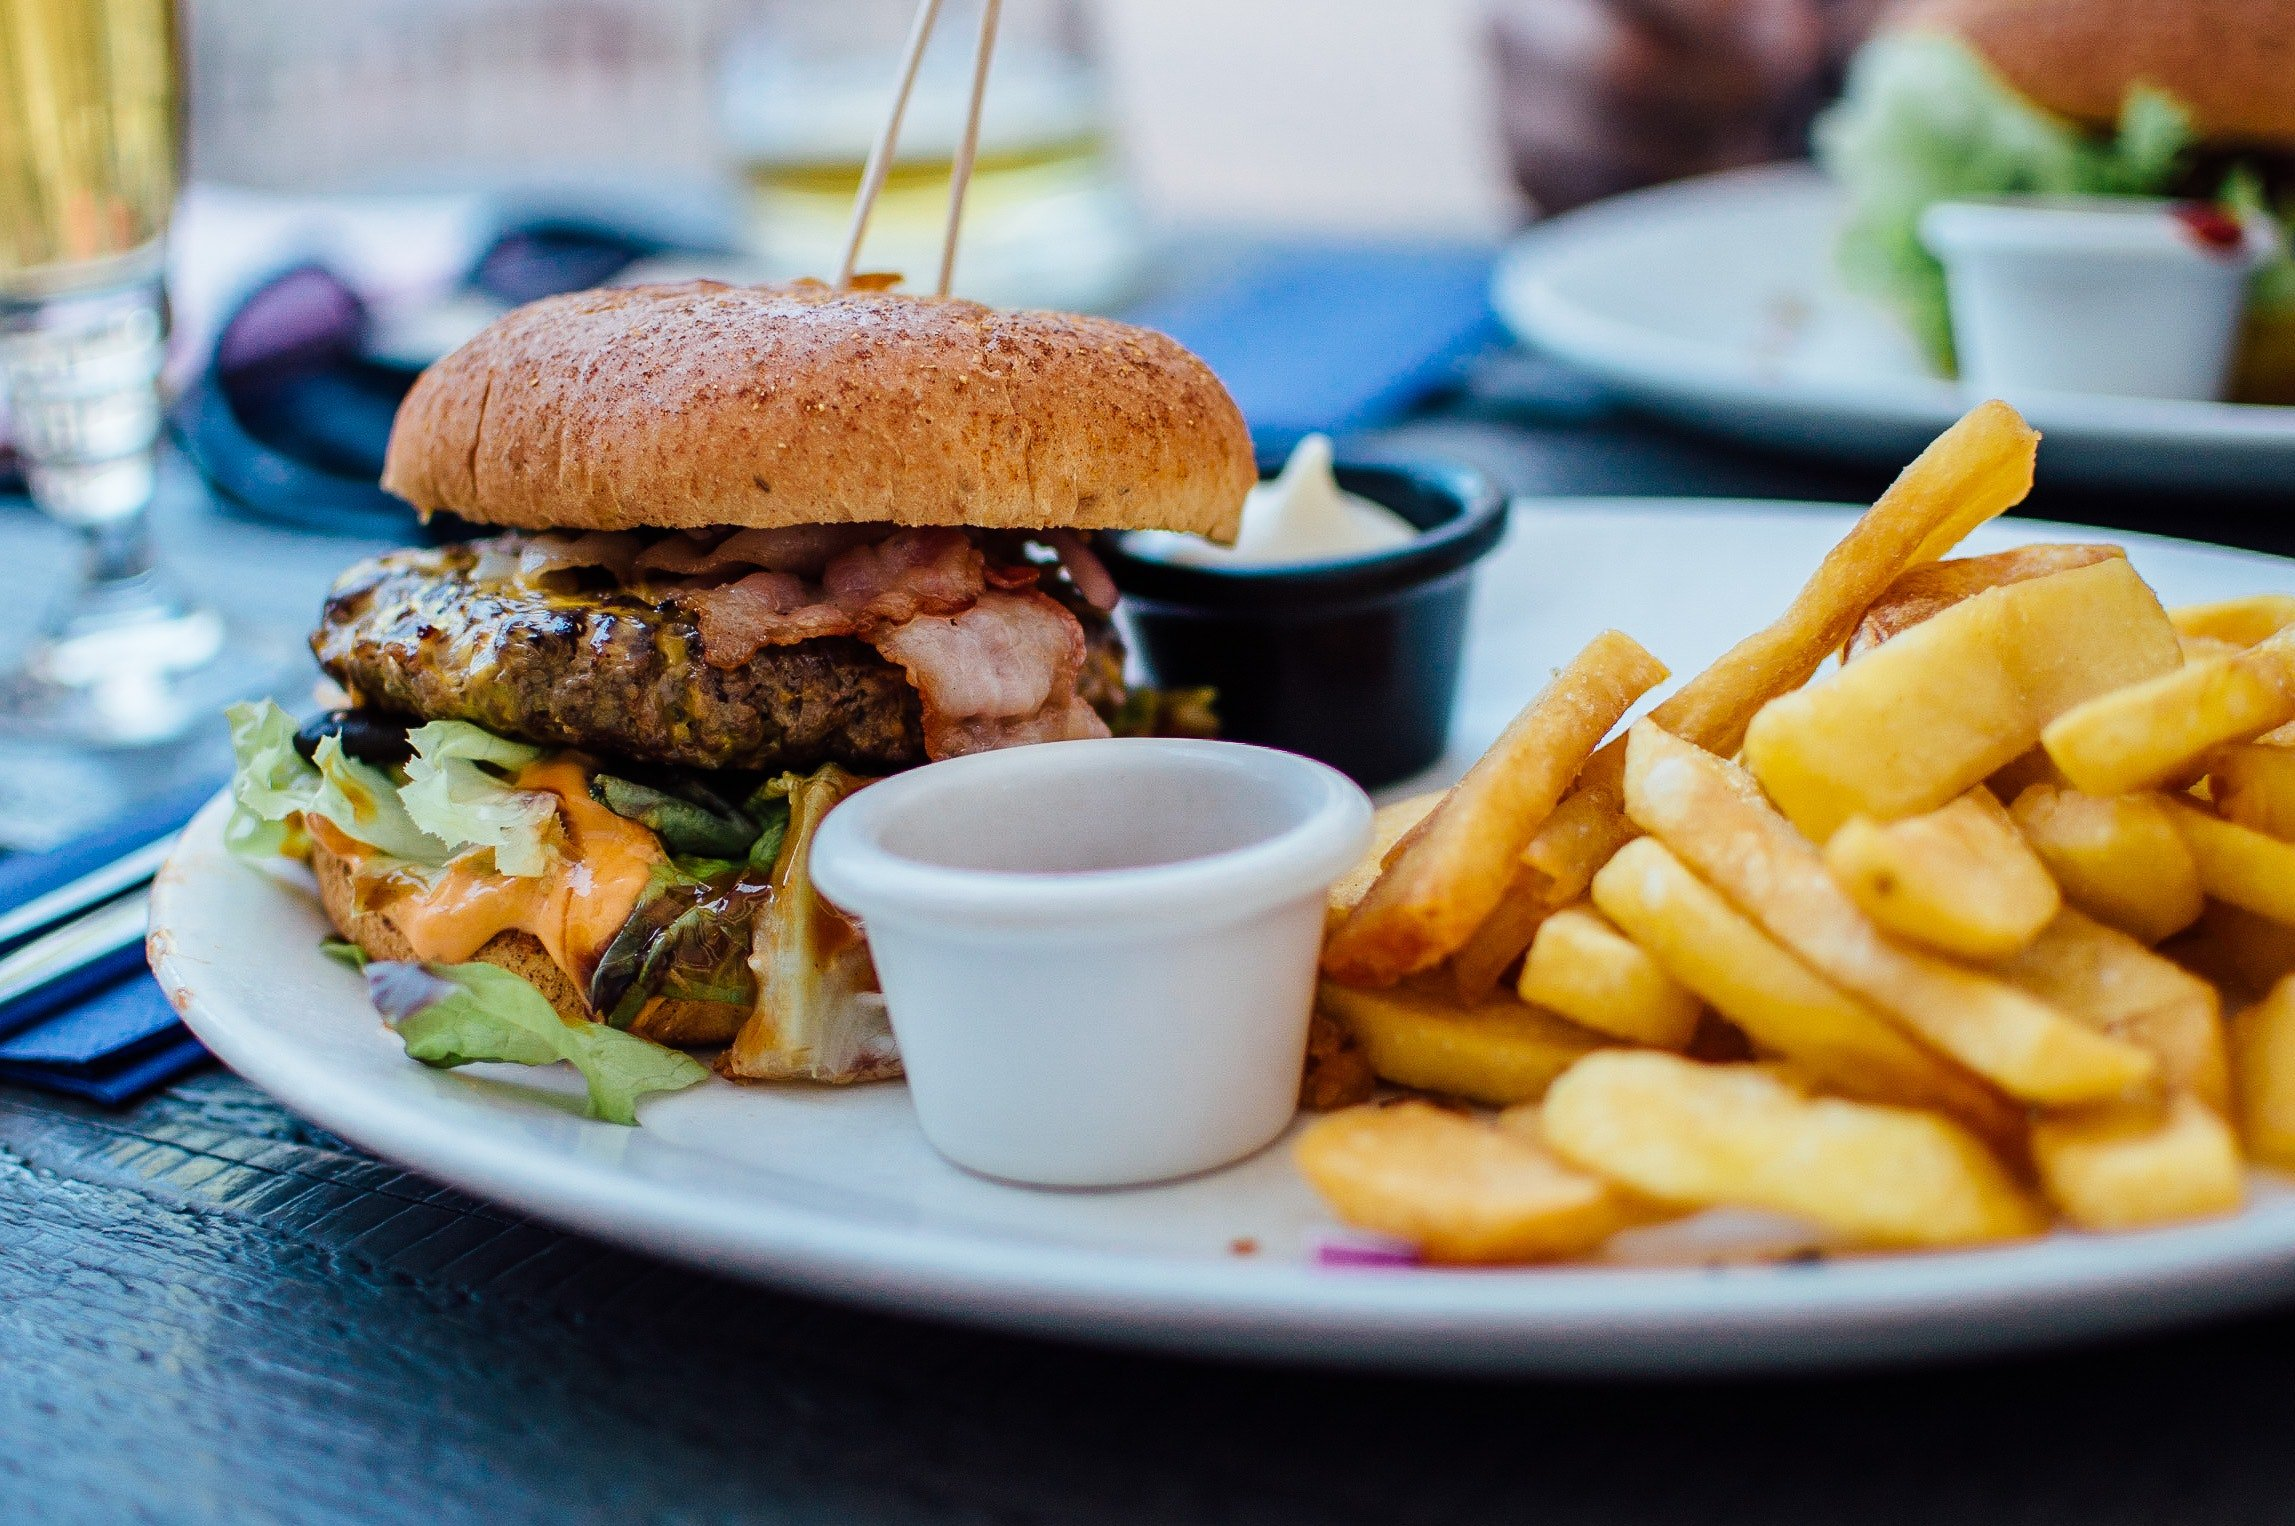 Burger and fries. | Source: Pexels